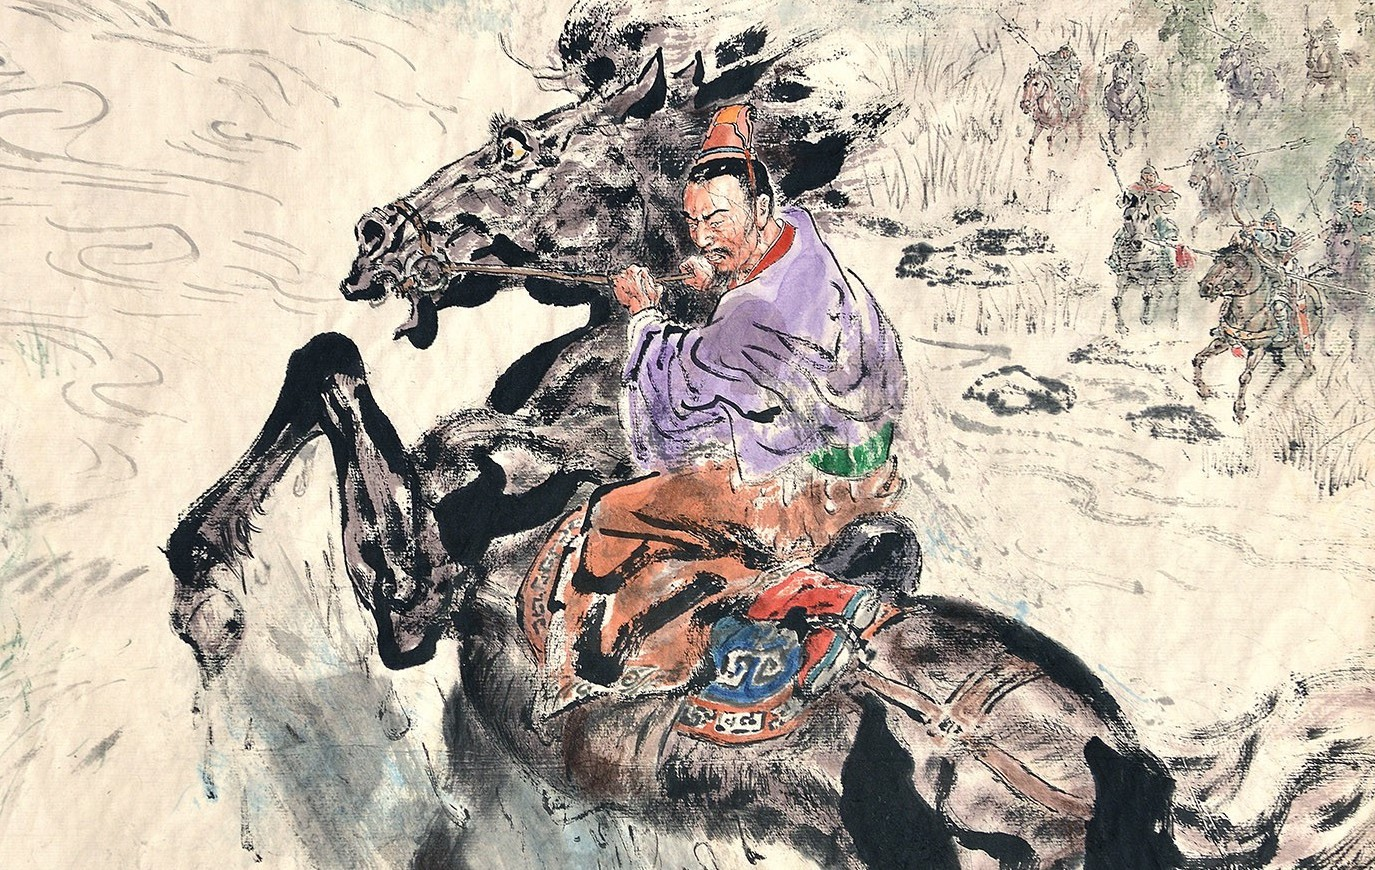 Tung Pui-sun,The Leaping Horse over the Creek from The Records of Three Kingdom, 2019